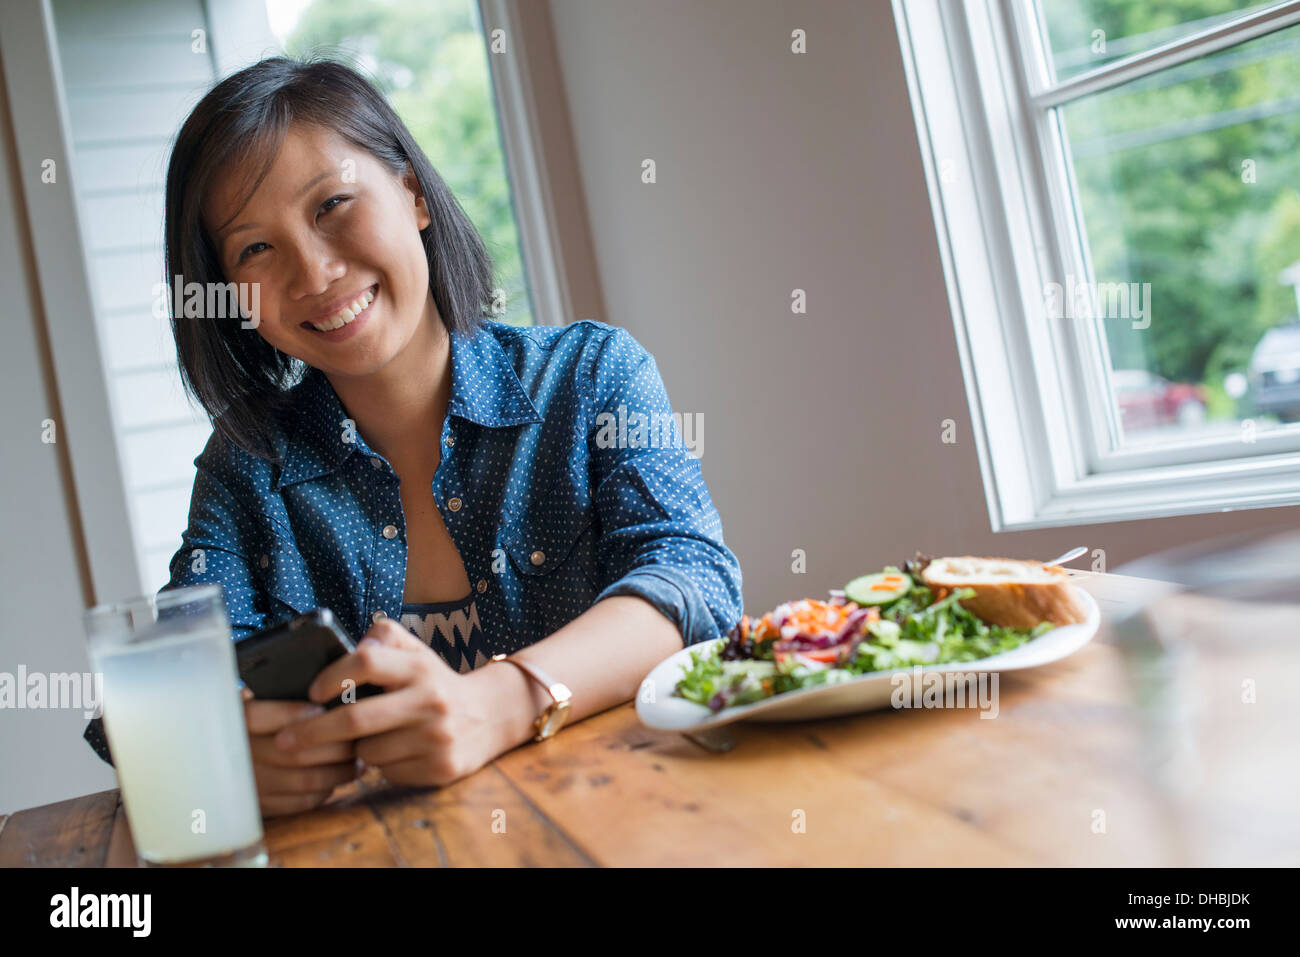 A young woman using a smart phone, seated at a table. Coffee and a sandwich. - Stock Image